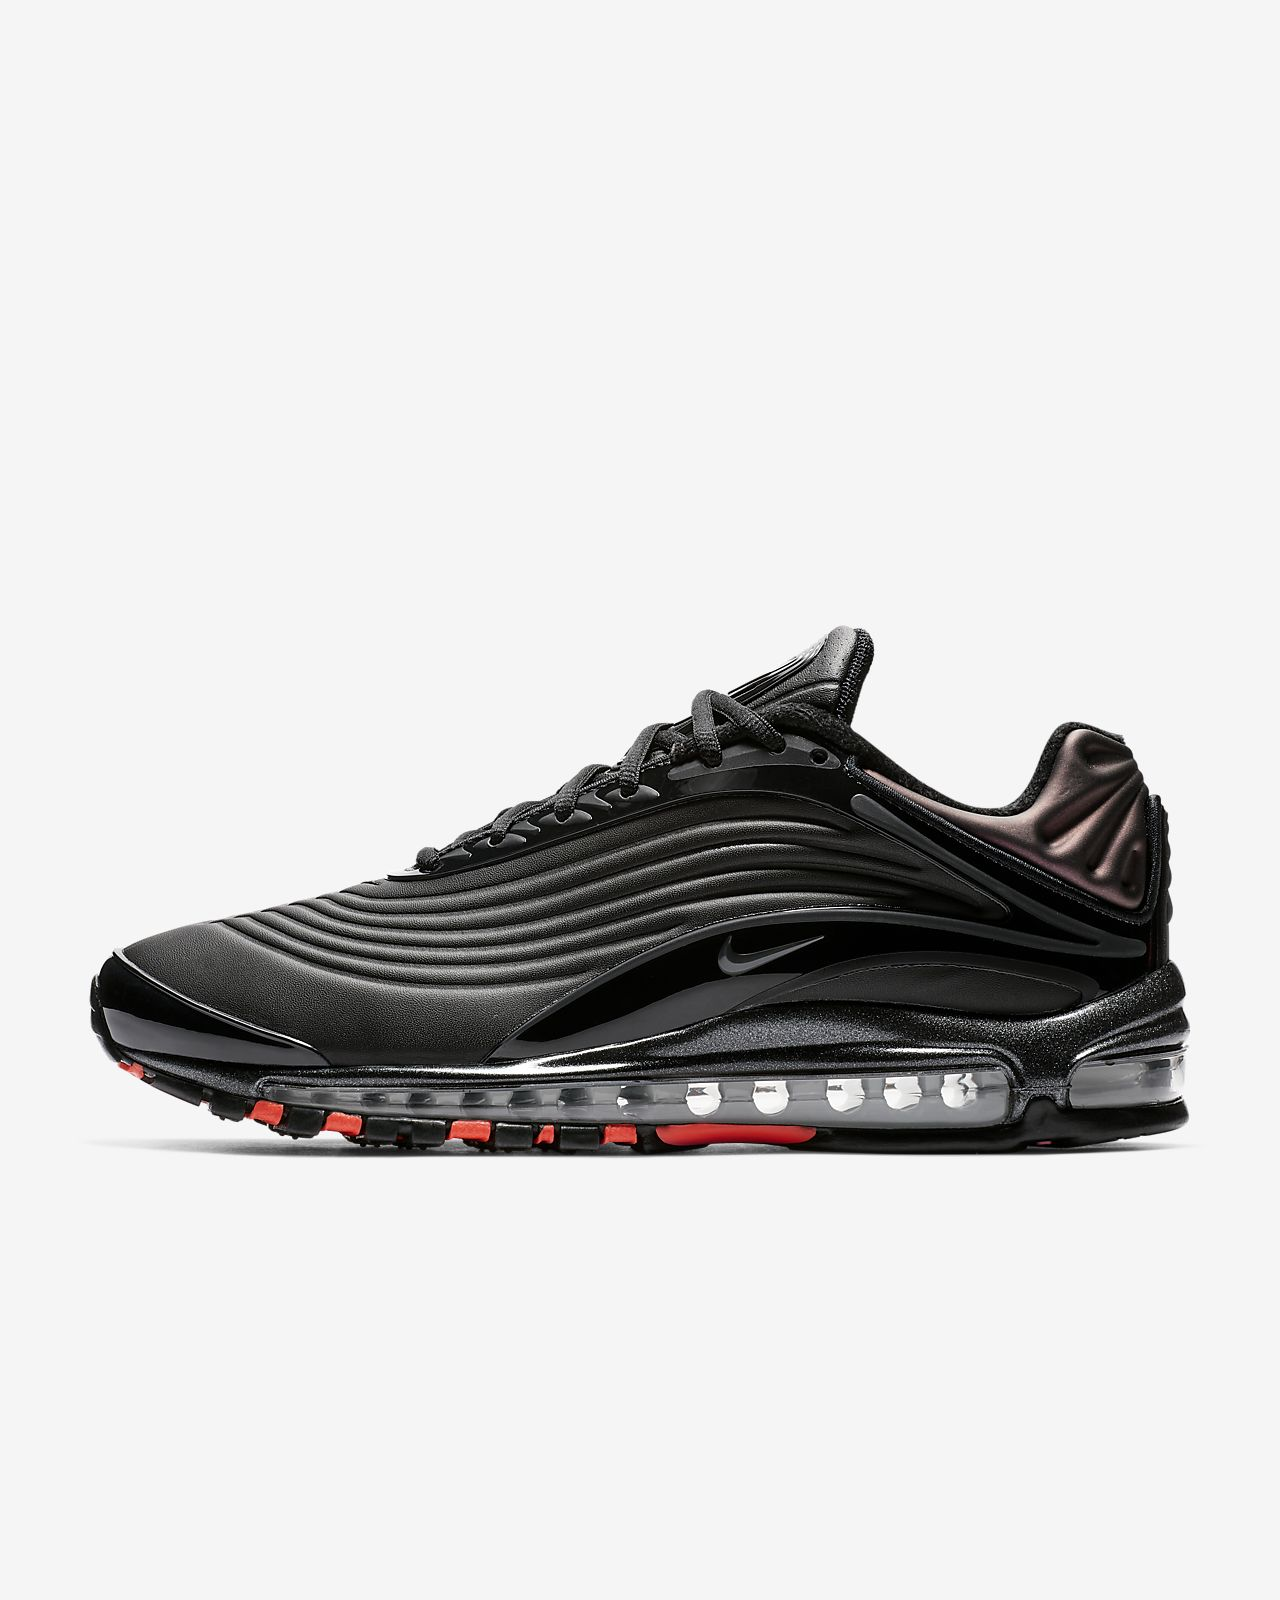 8bd8871195c5c4 Nike Air Max Deluxe SE Men s Shoe. Nike.com GB